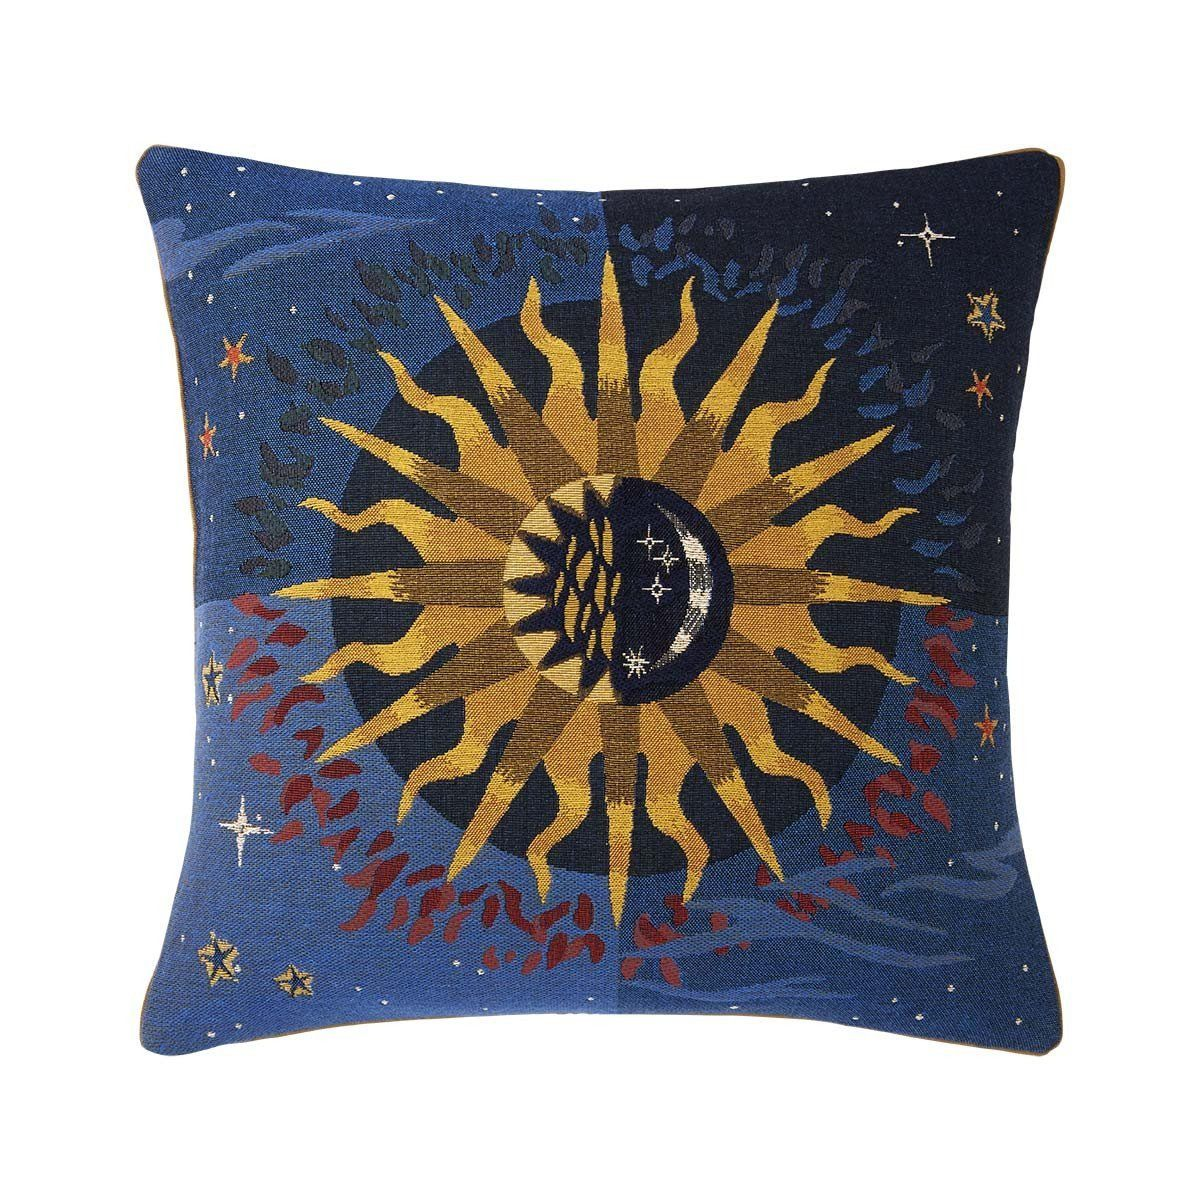 Soleil Nuit Decorative Pillow by Iosis